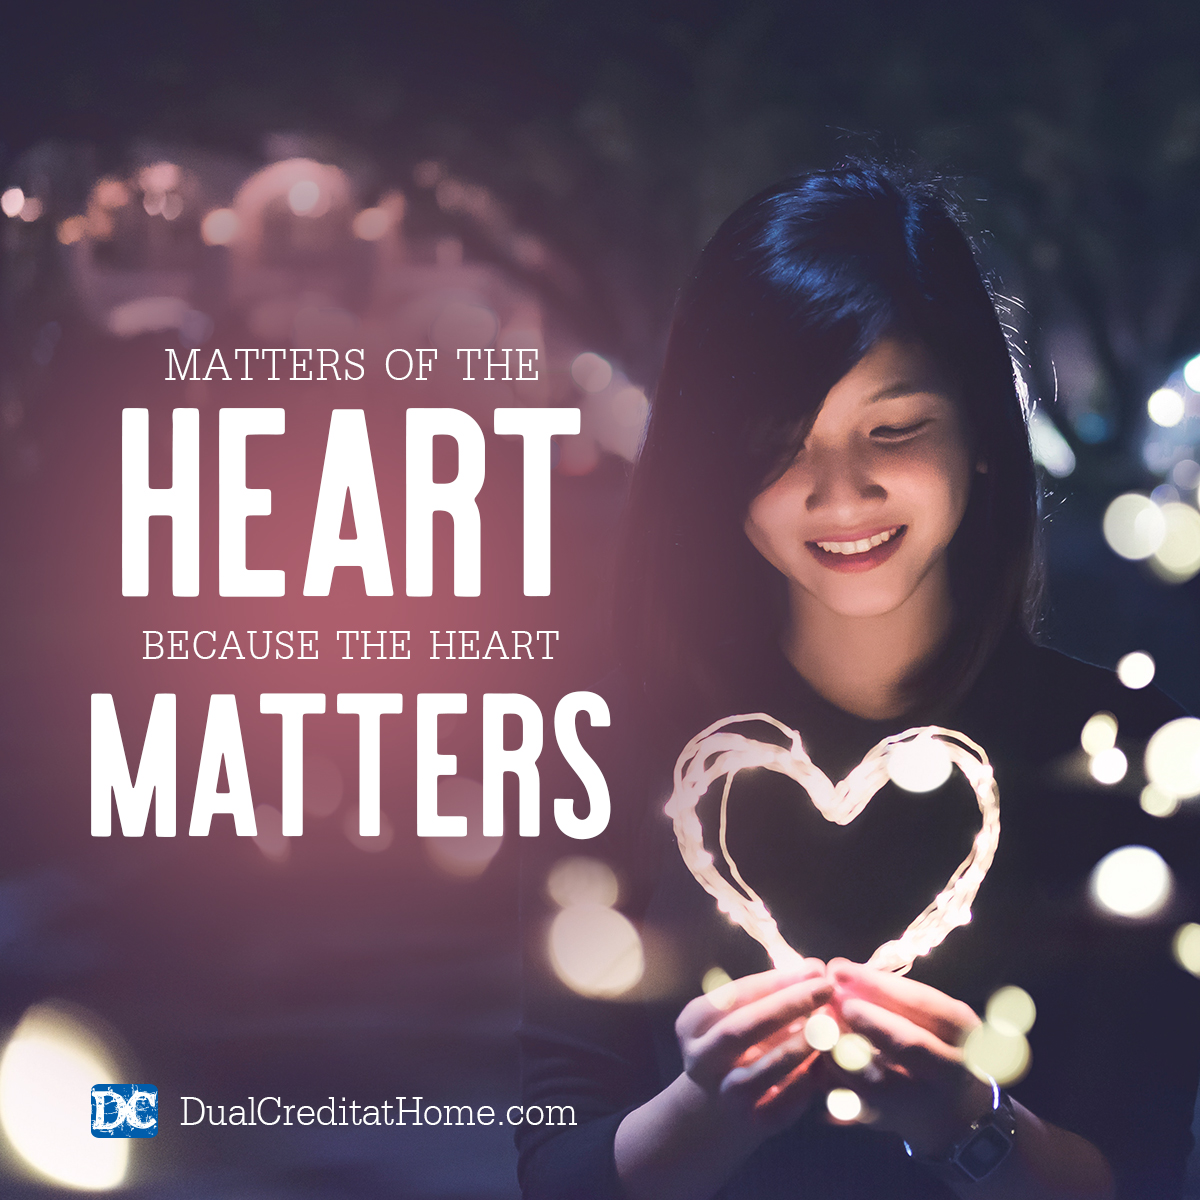 Matters of the Heart, Because the Heart Matters